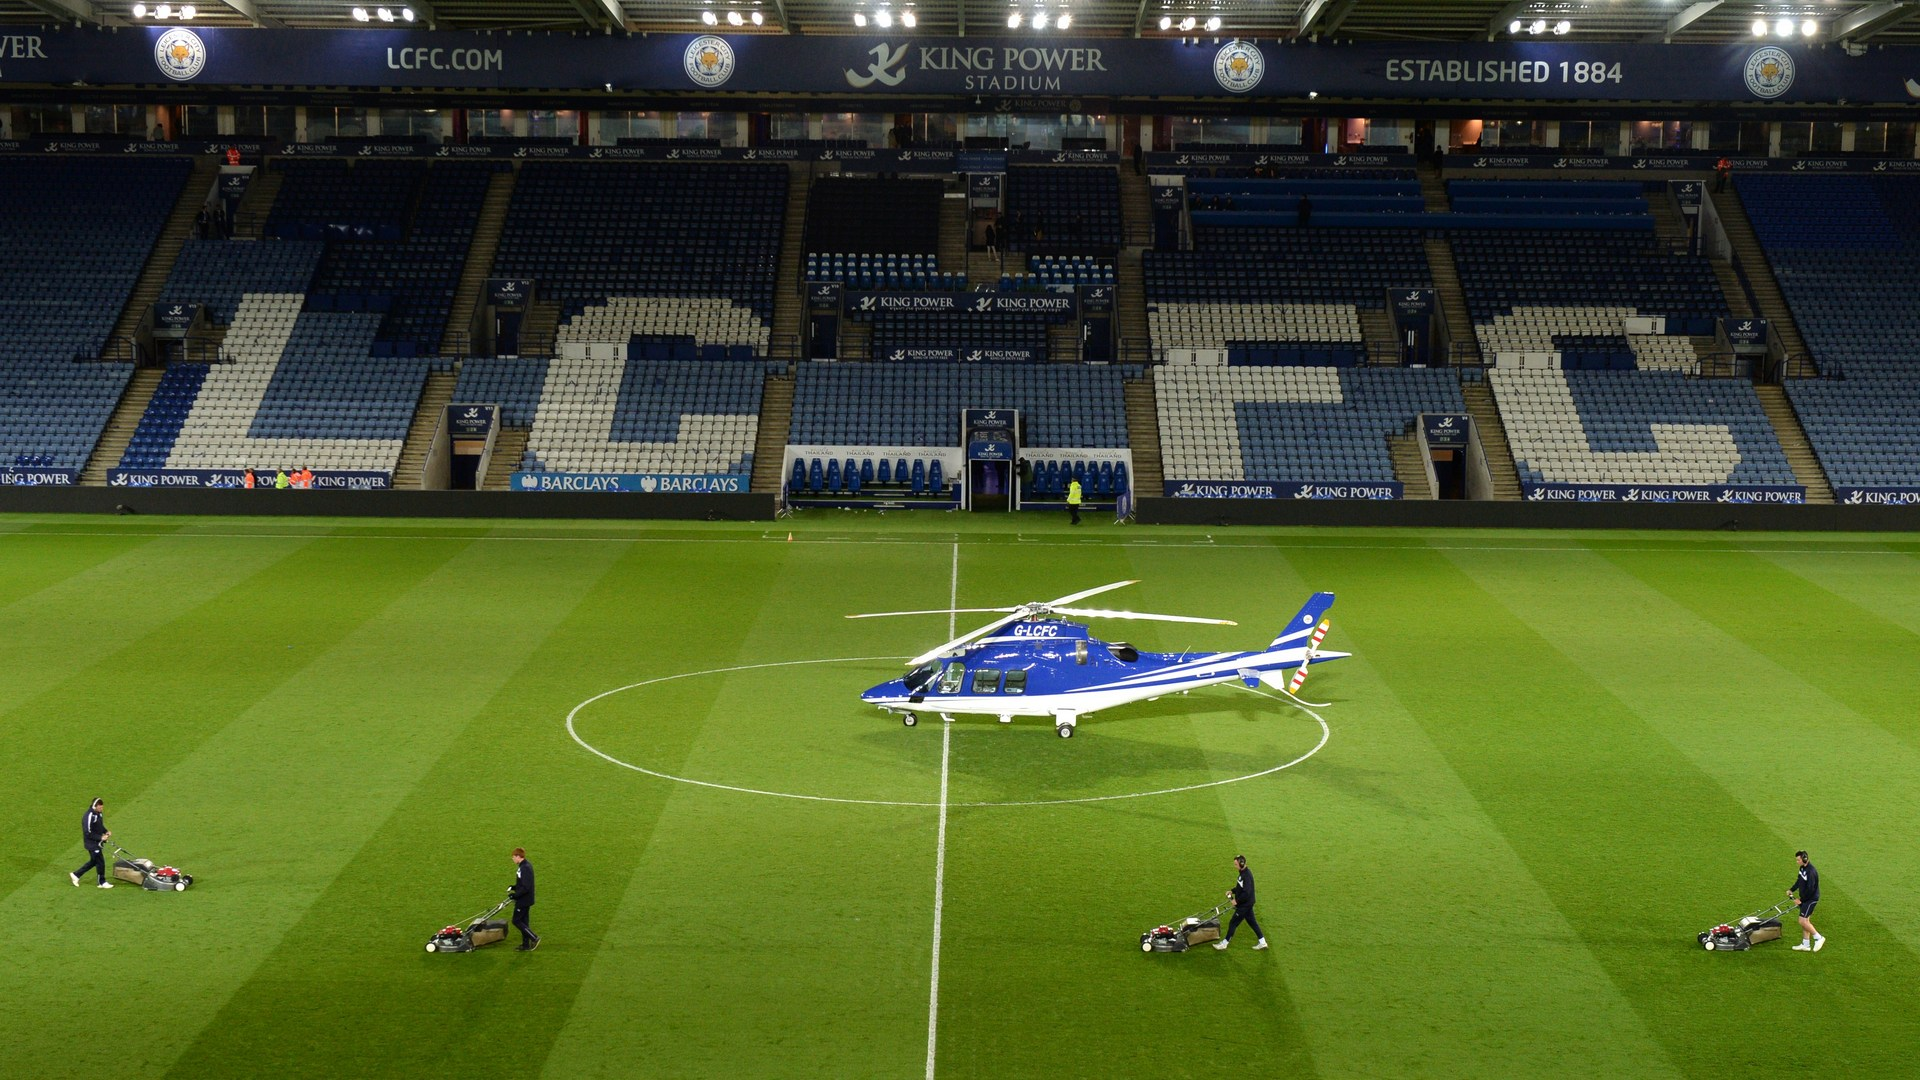 Owner's helicopter crashes outside Leicester stadium